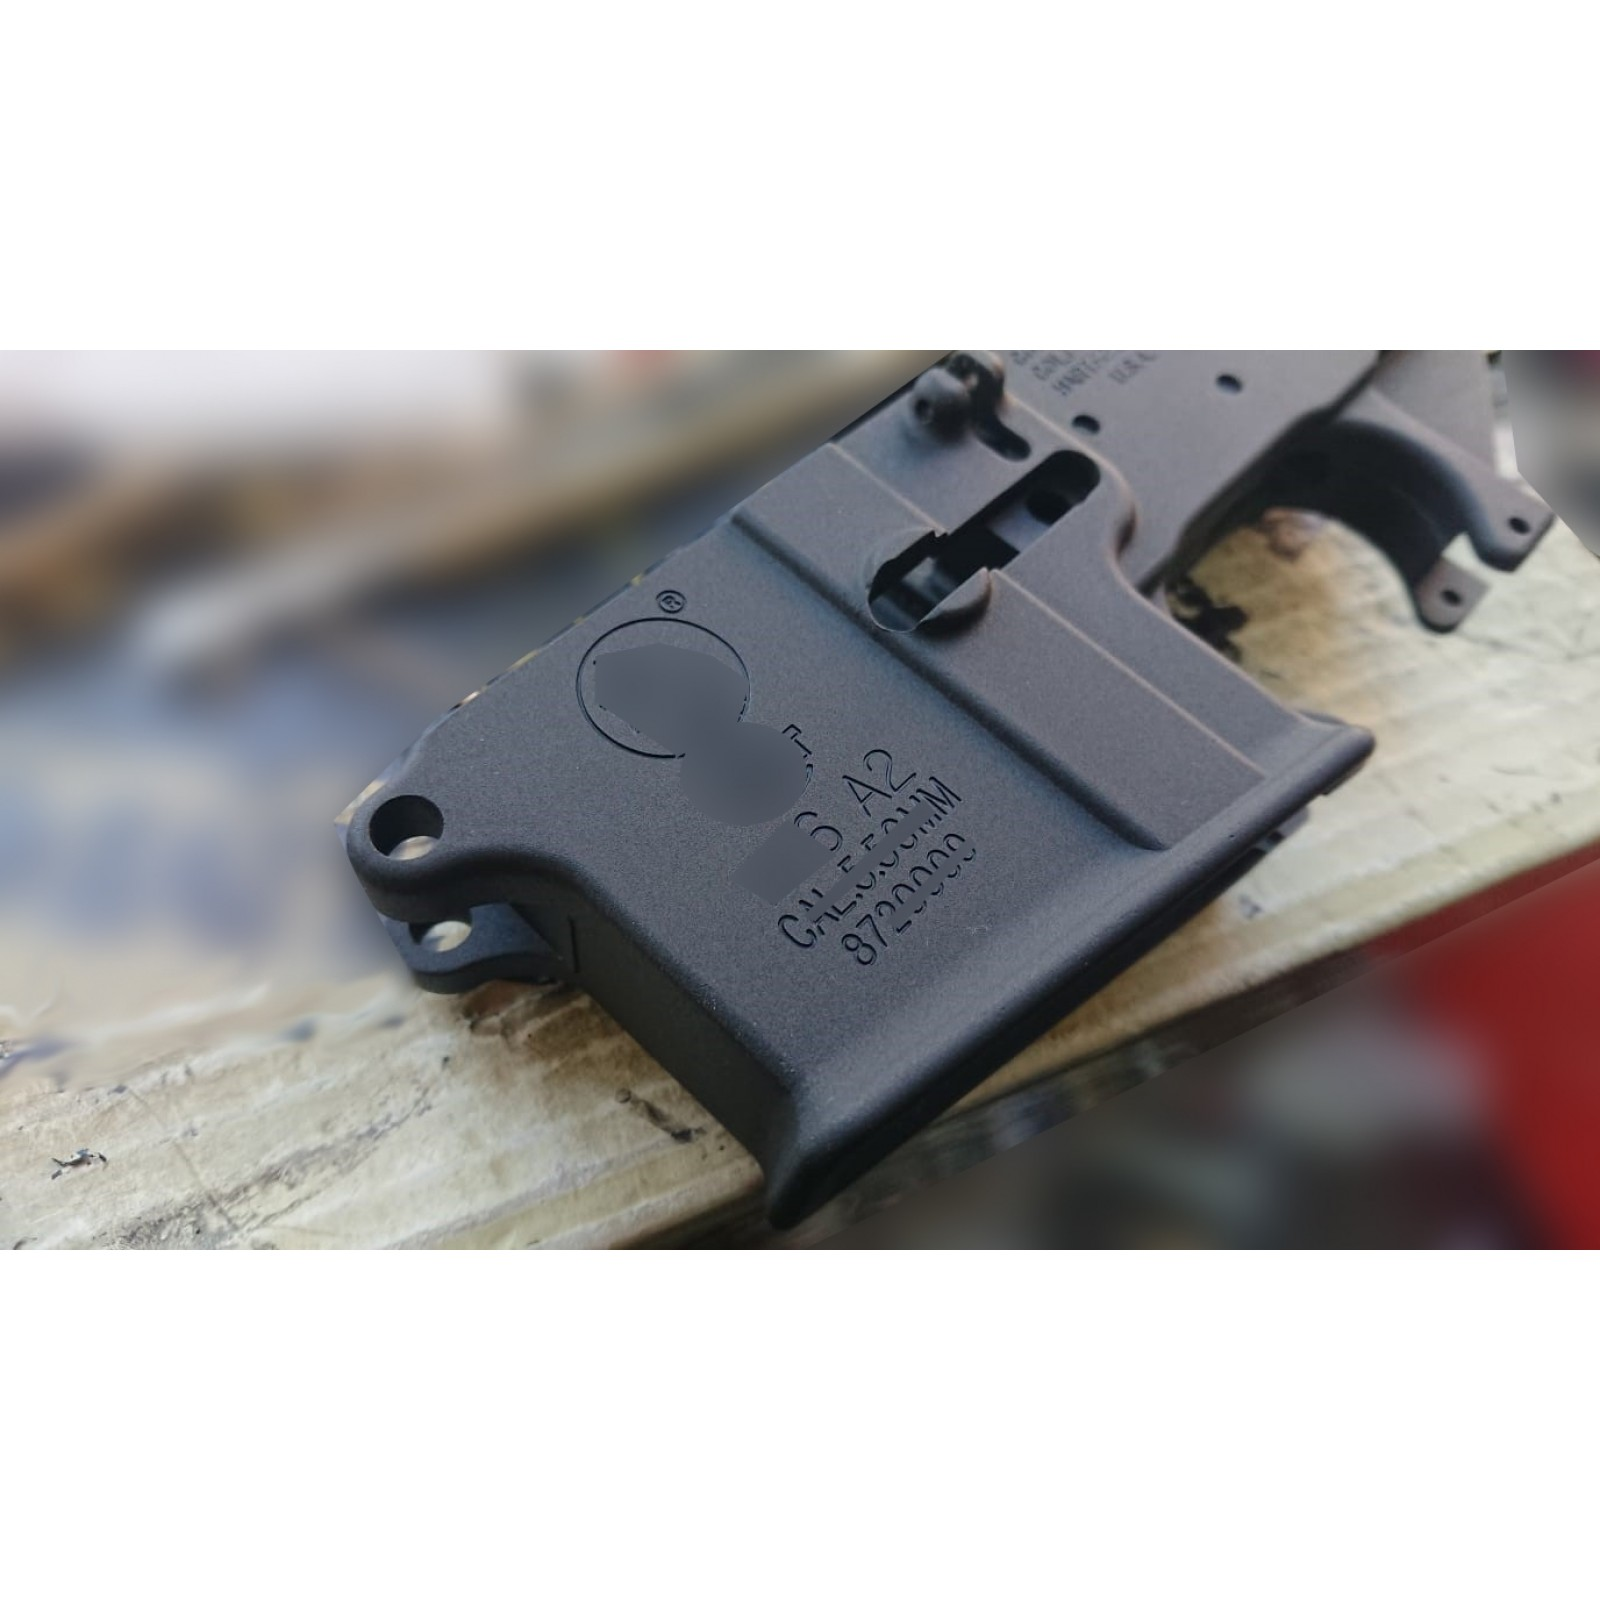 WE M4 GBB rifle lower body receiver #105 (M16 A2 marking)